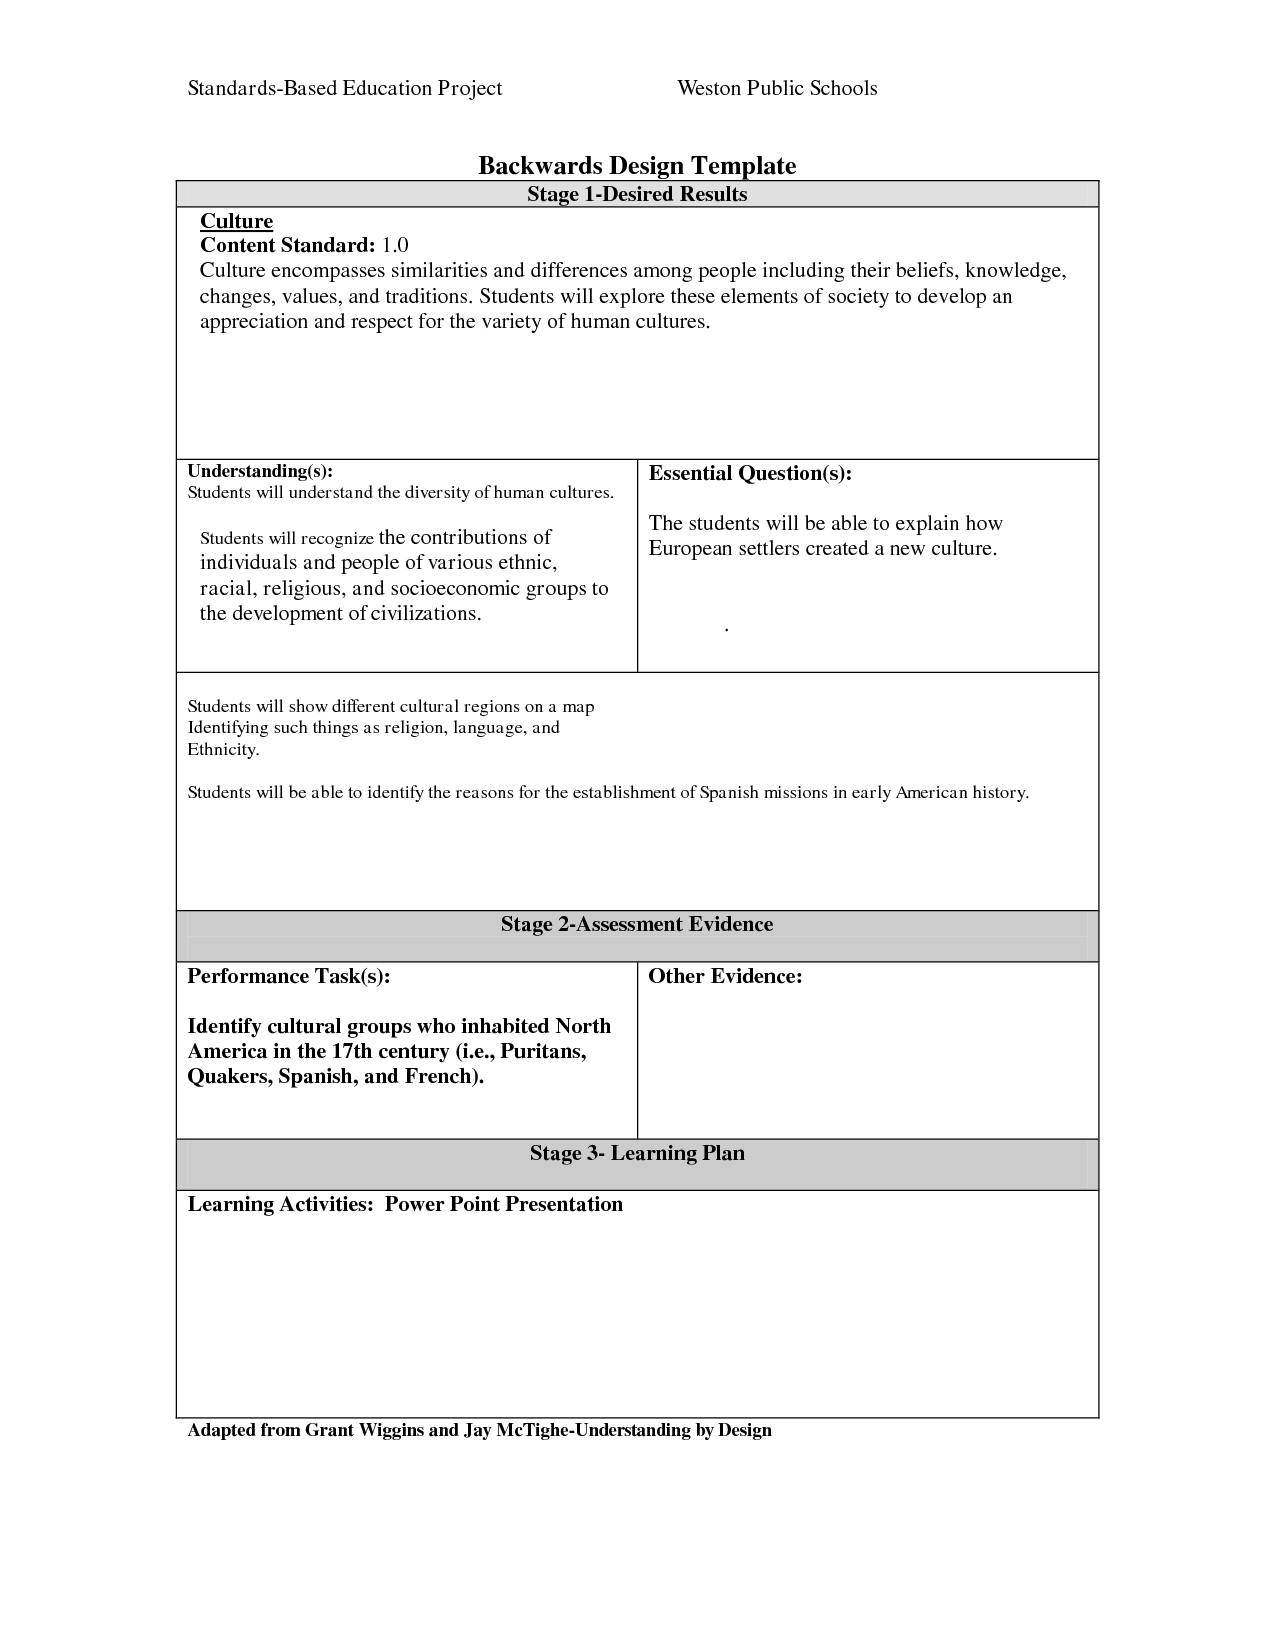 Backward Design Lesson Template Backwards By Design Template Lessons Template Lesson Plan Templates Unit Plan Template